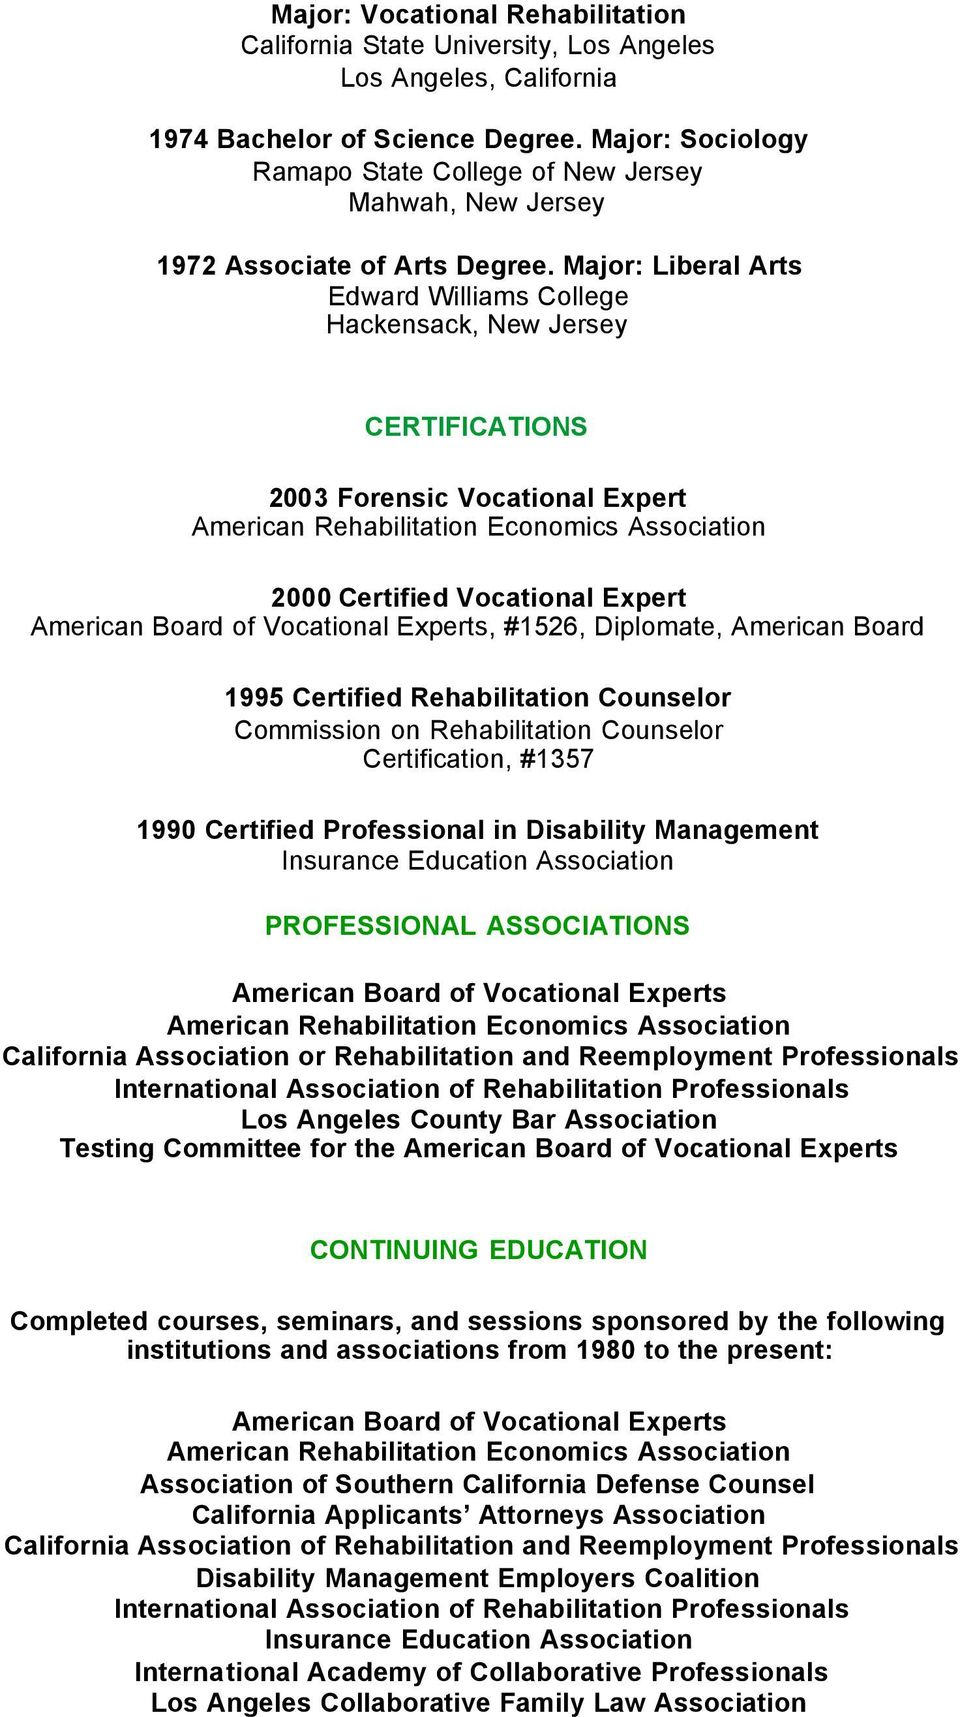 Curriculum Vitae About Susan D Green Ms Crc Abve Fve Pdf